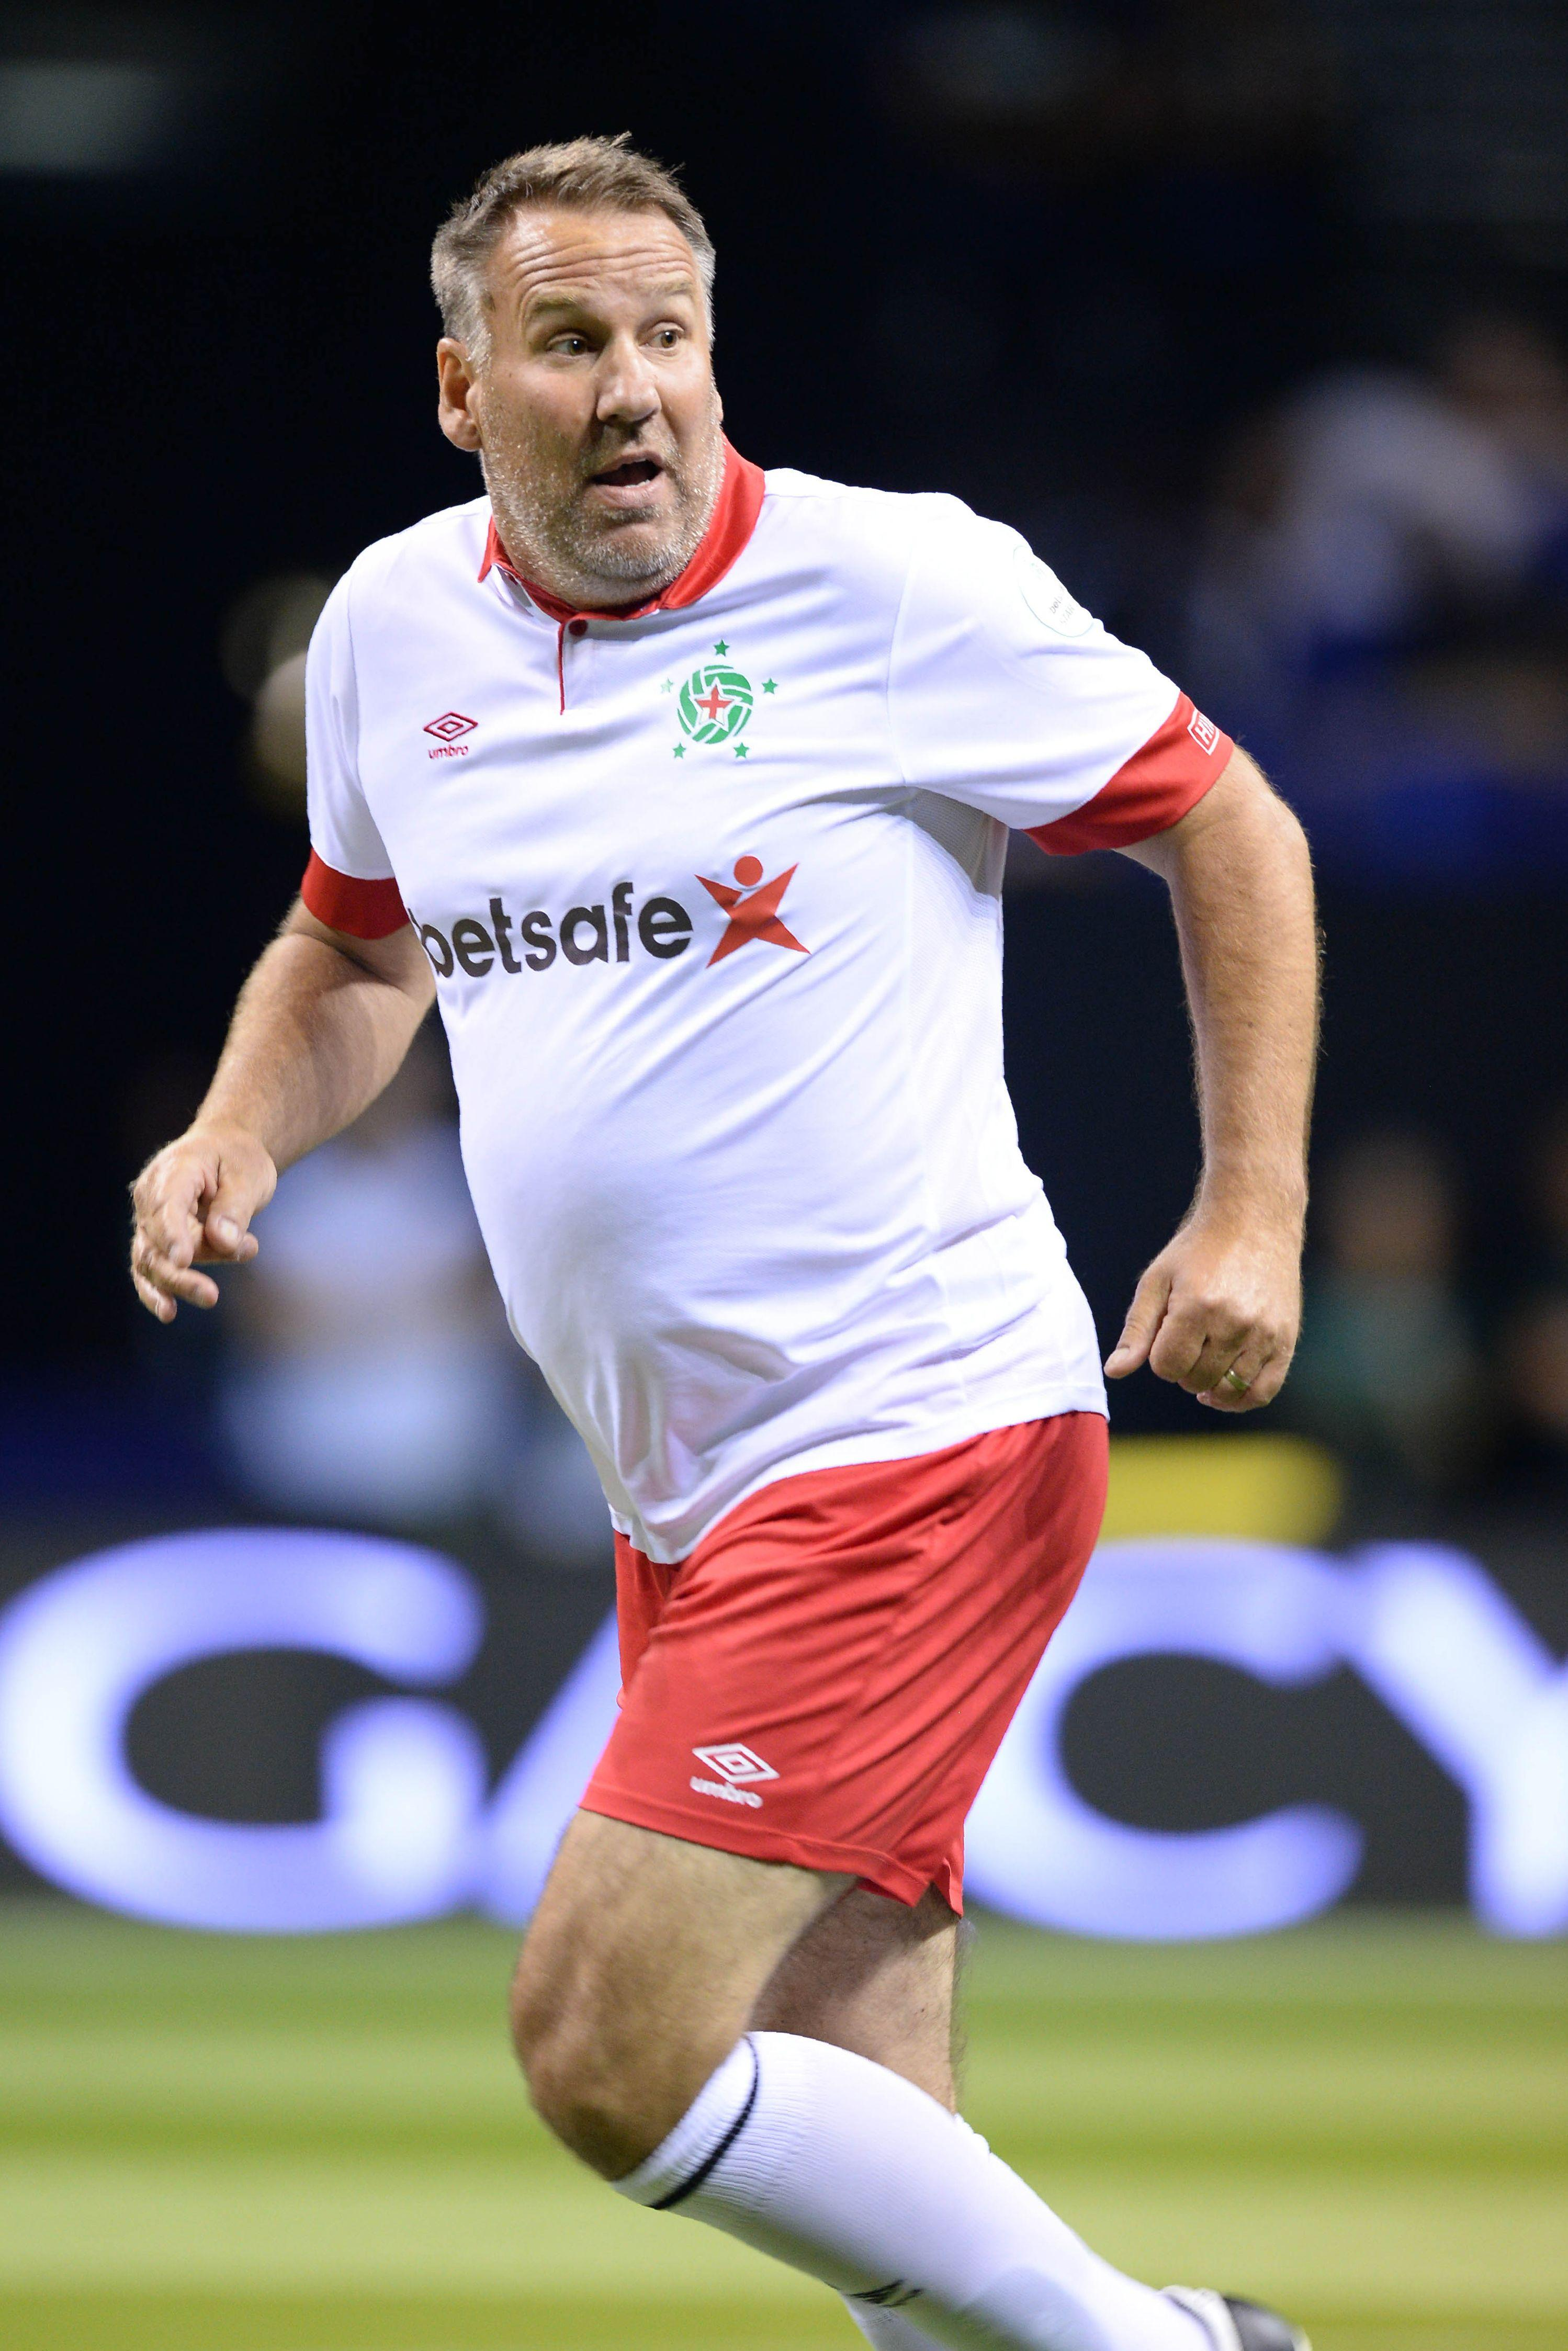 Get ya boots on and show em how it's done, ey Merse!